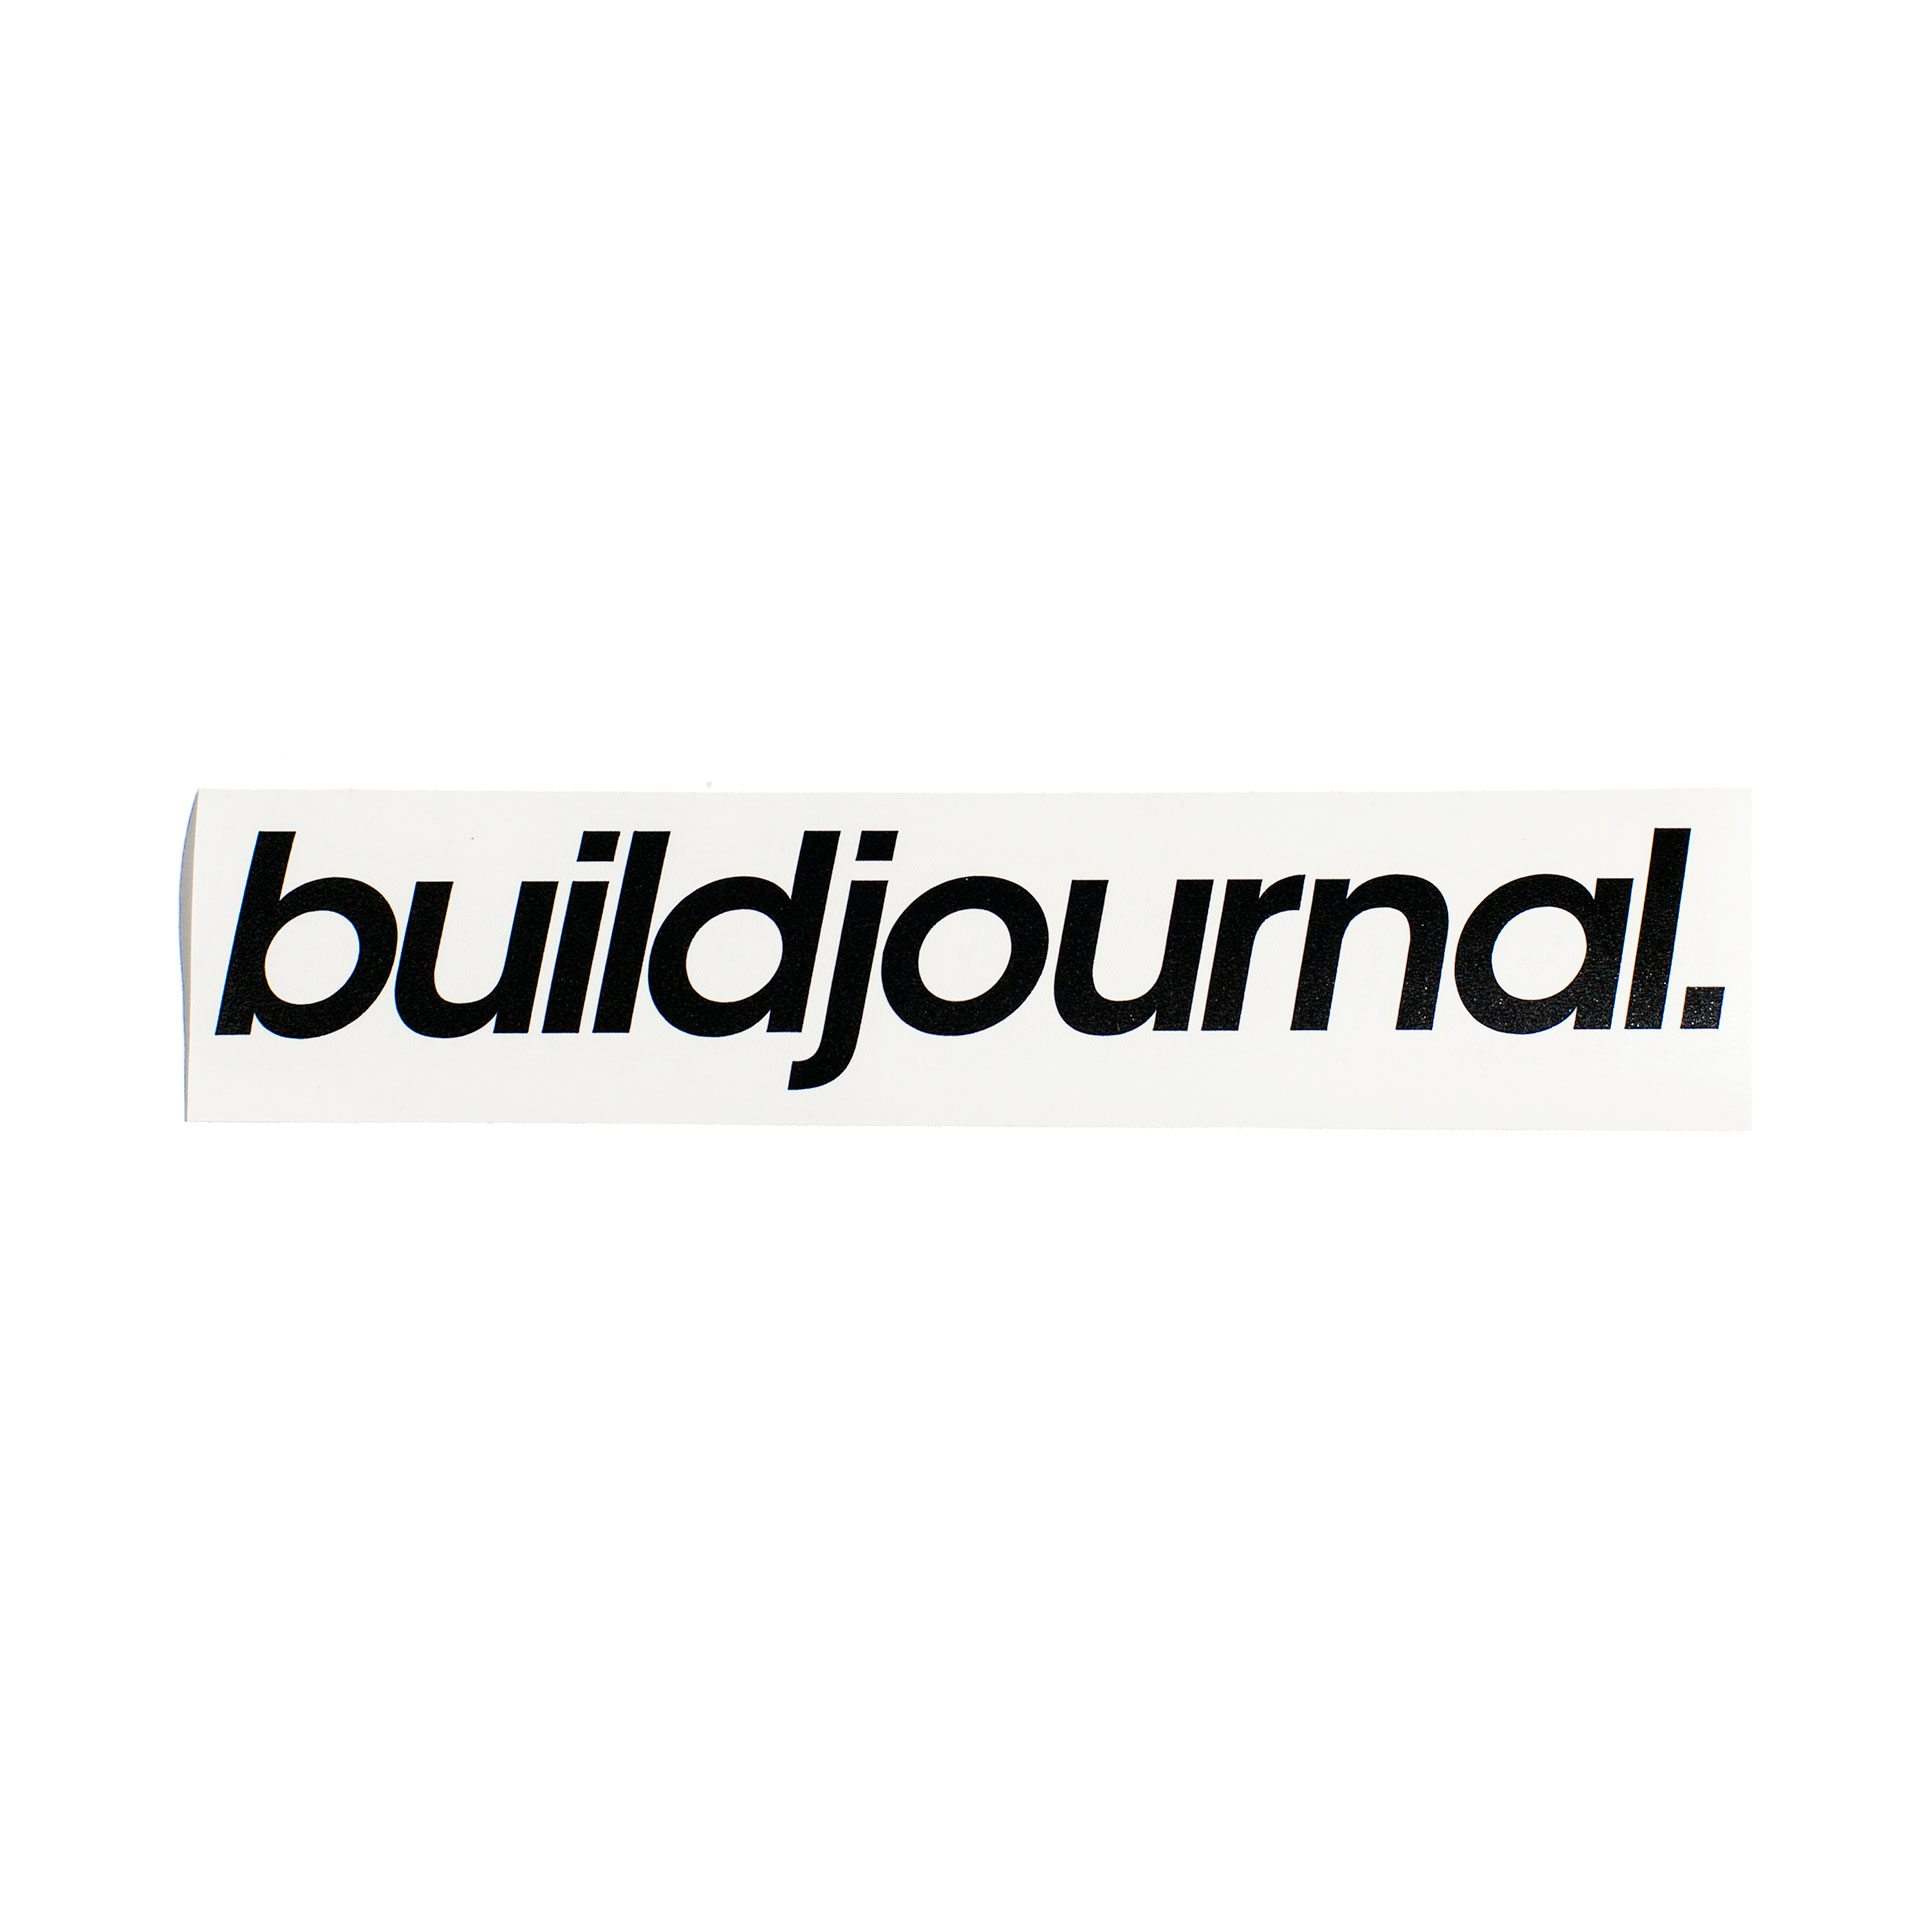 Buildjournal 8.5